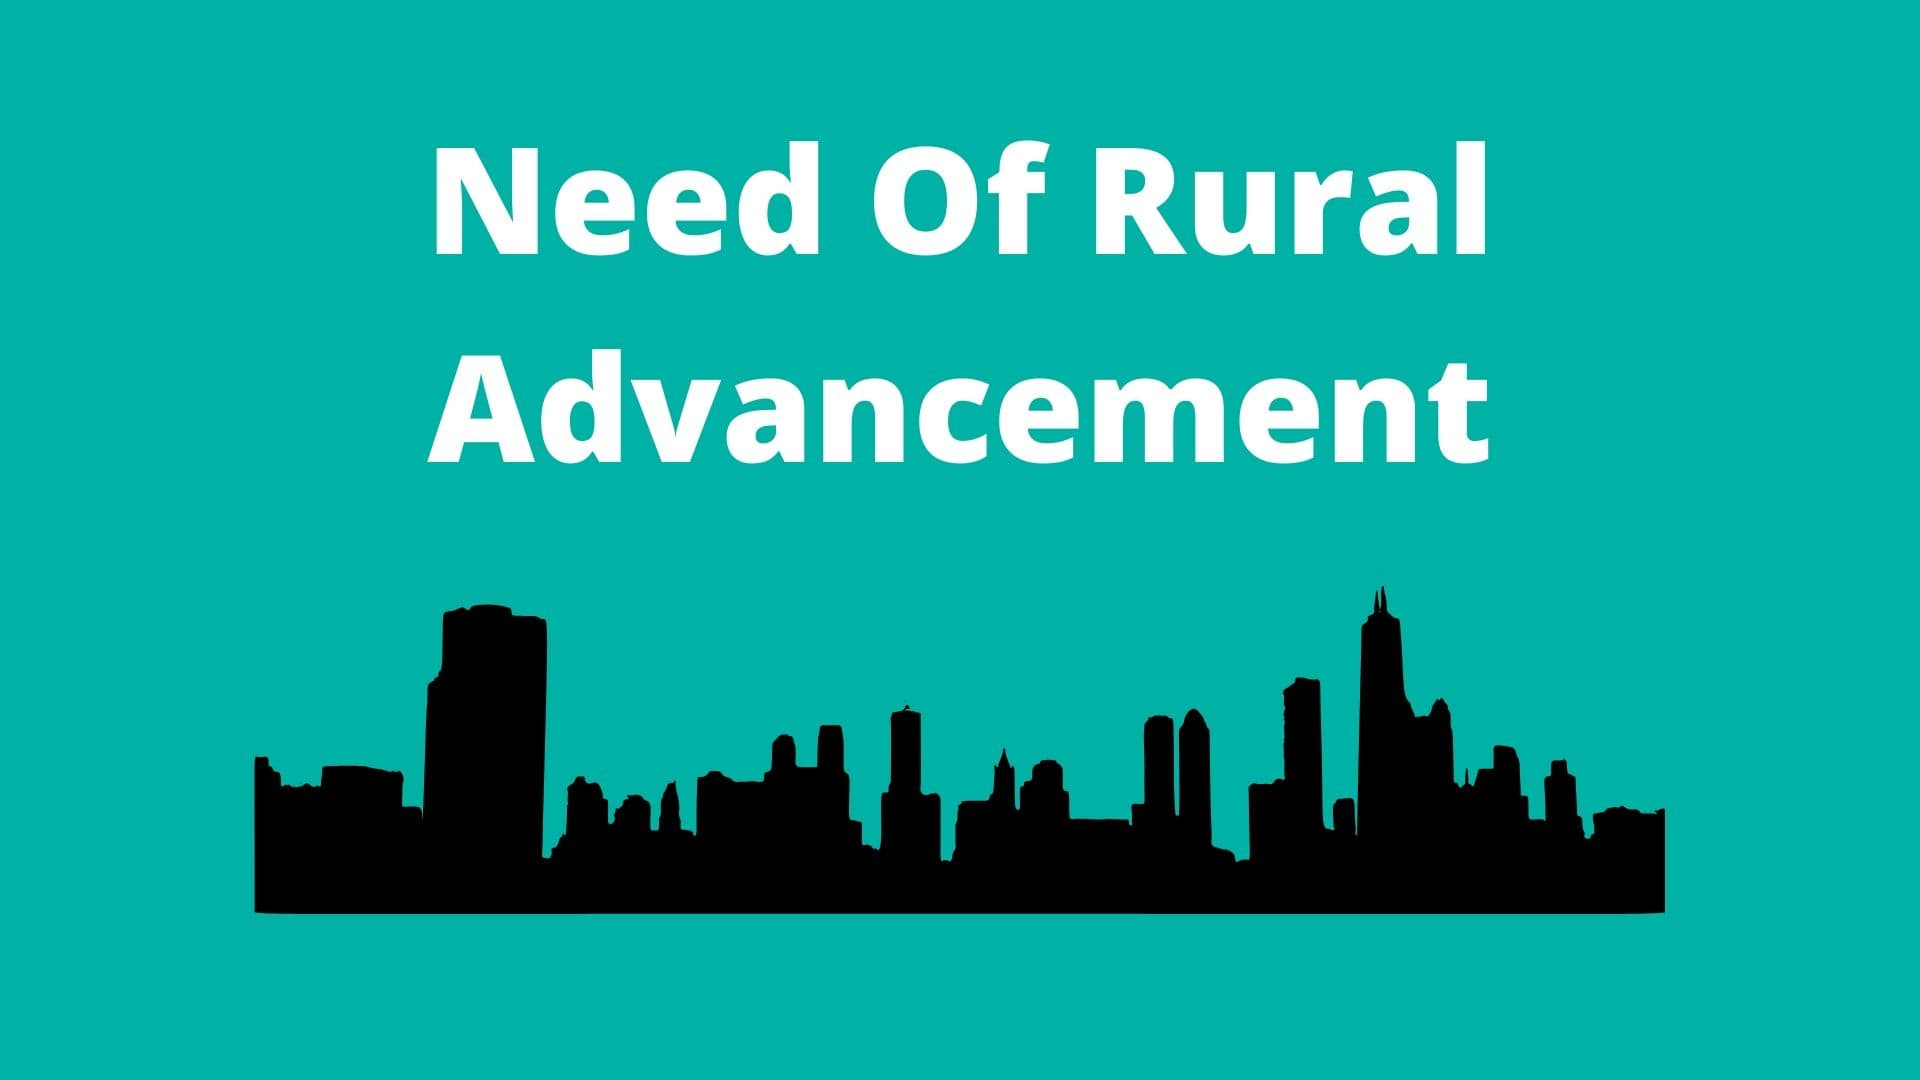 Rural Business Ideas For Advancement